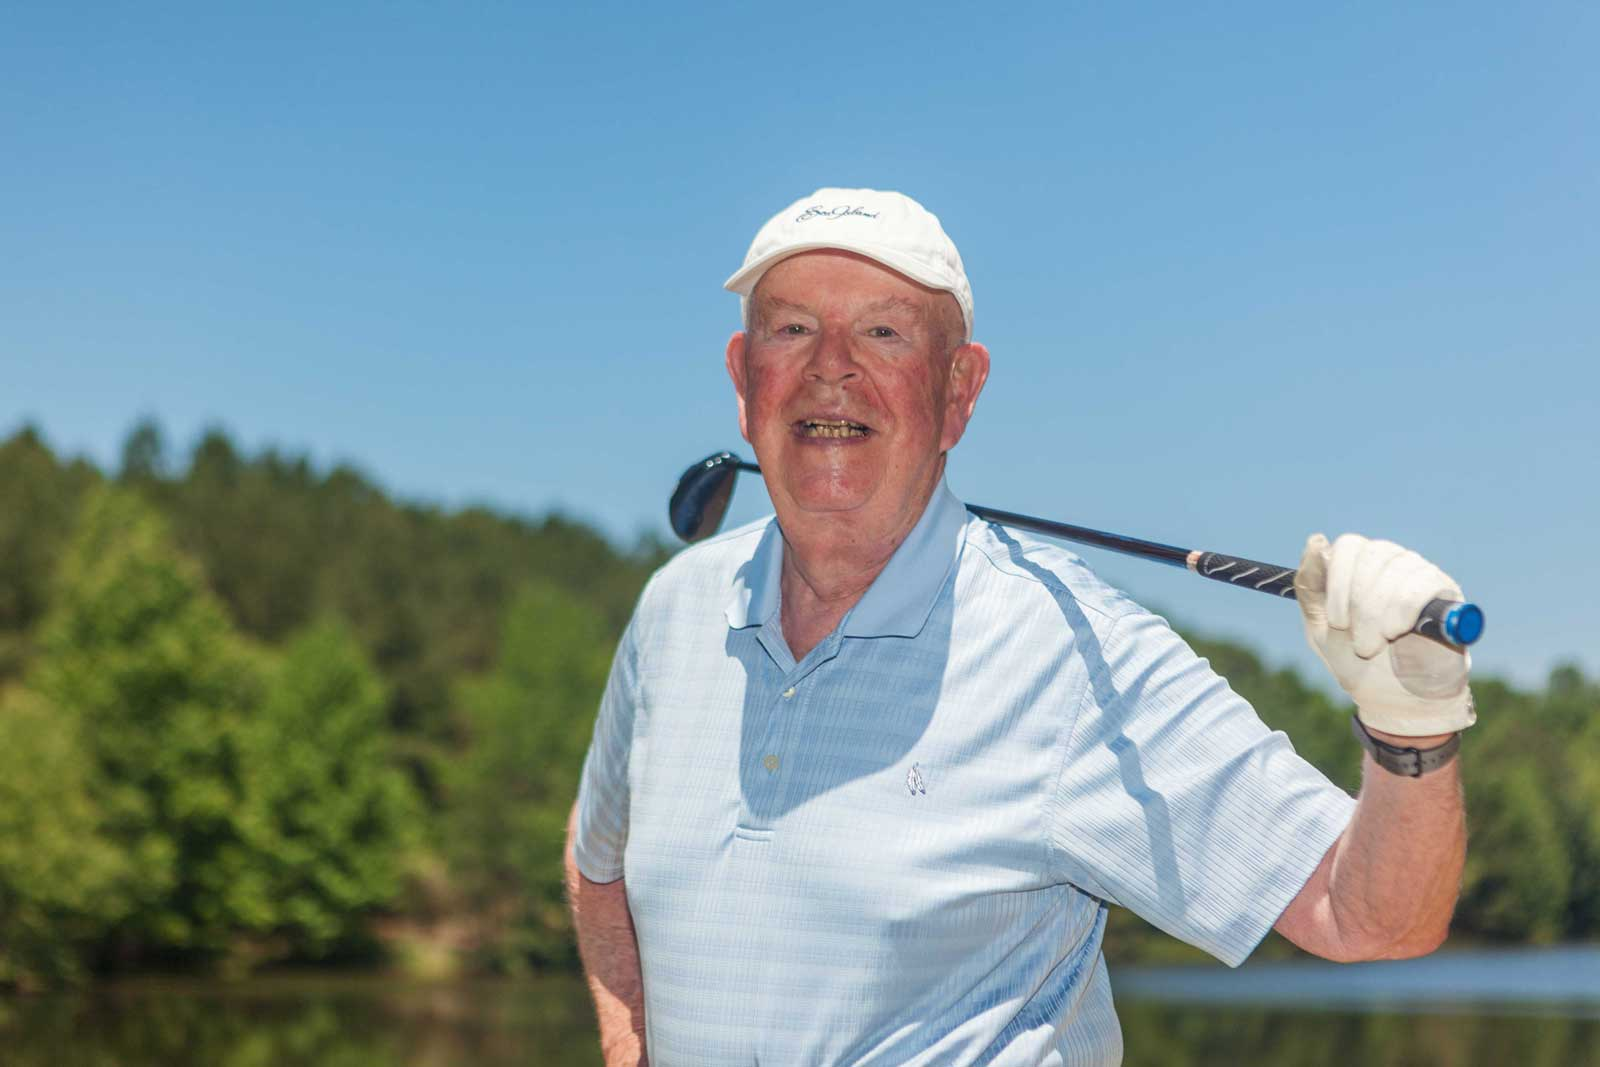 A resident pauses during an enjoyable round of golf